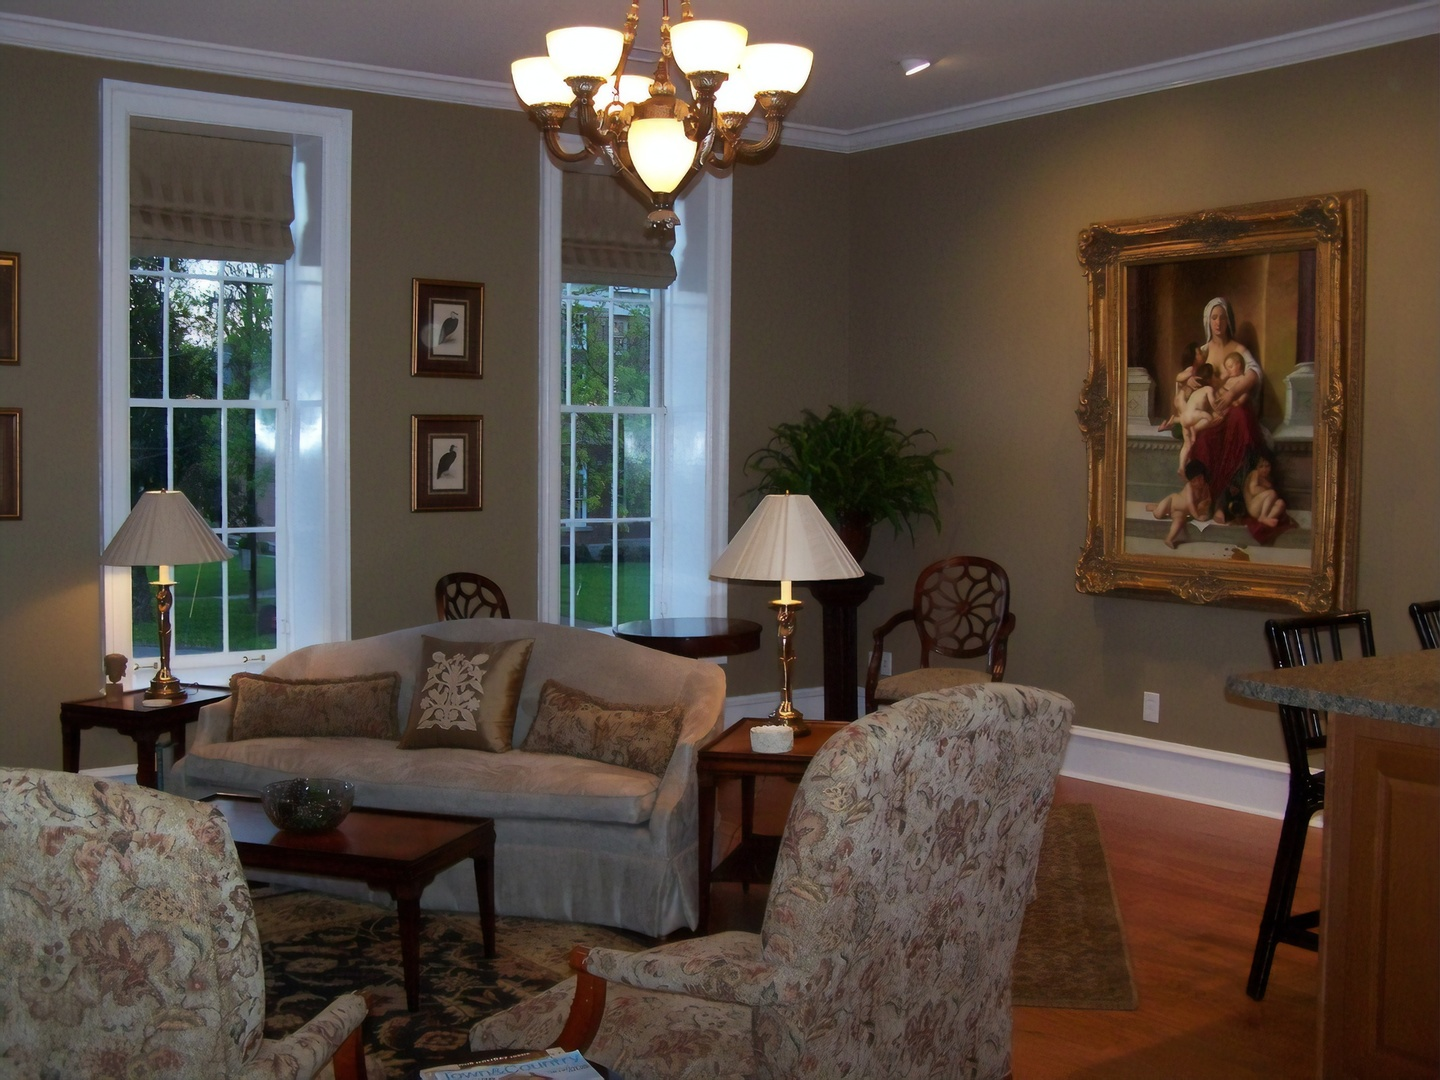 A living room filled with furniture and a fire place at Court Square Inn Bed & Breakfast.